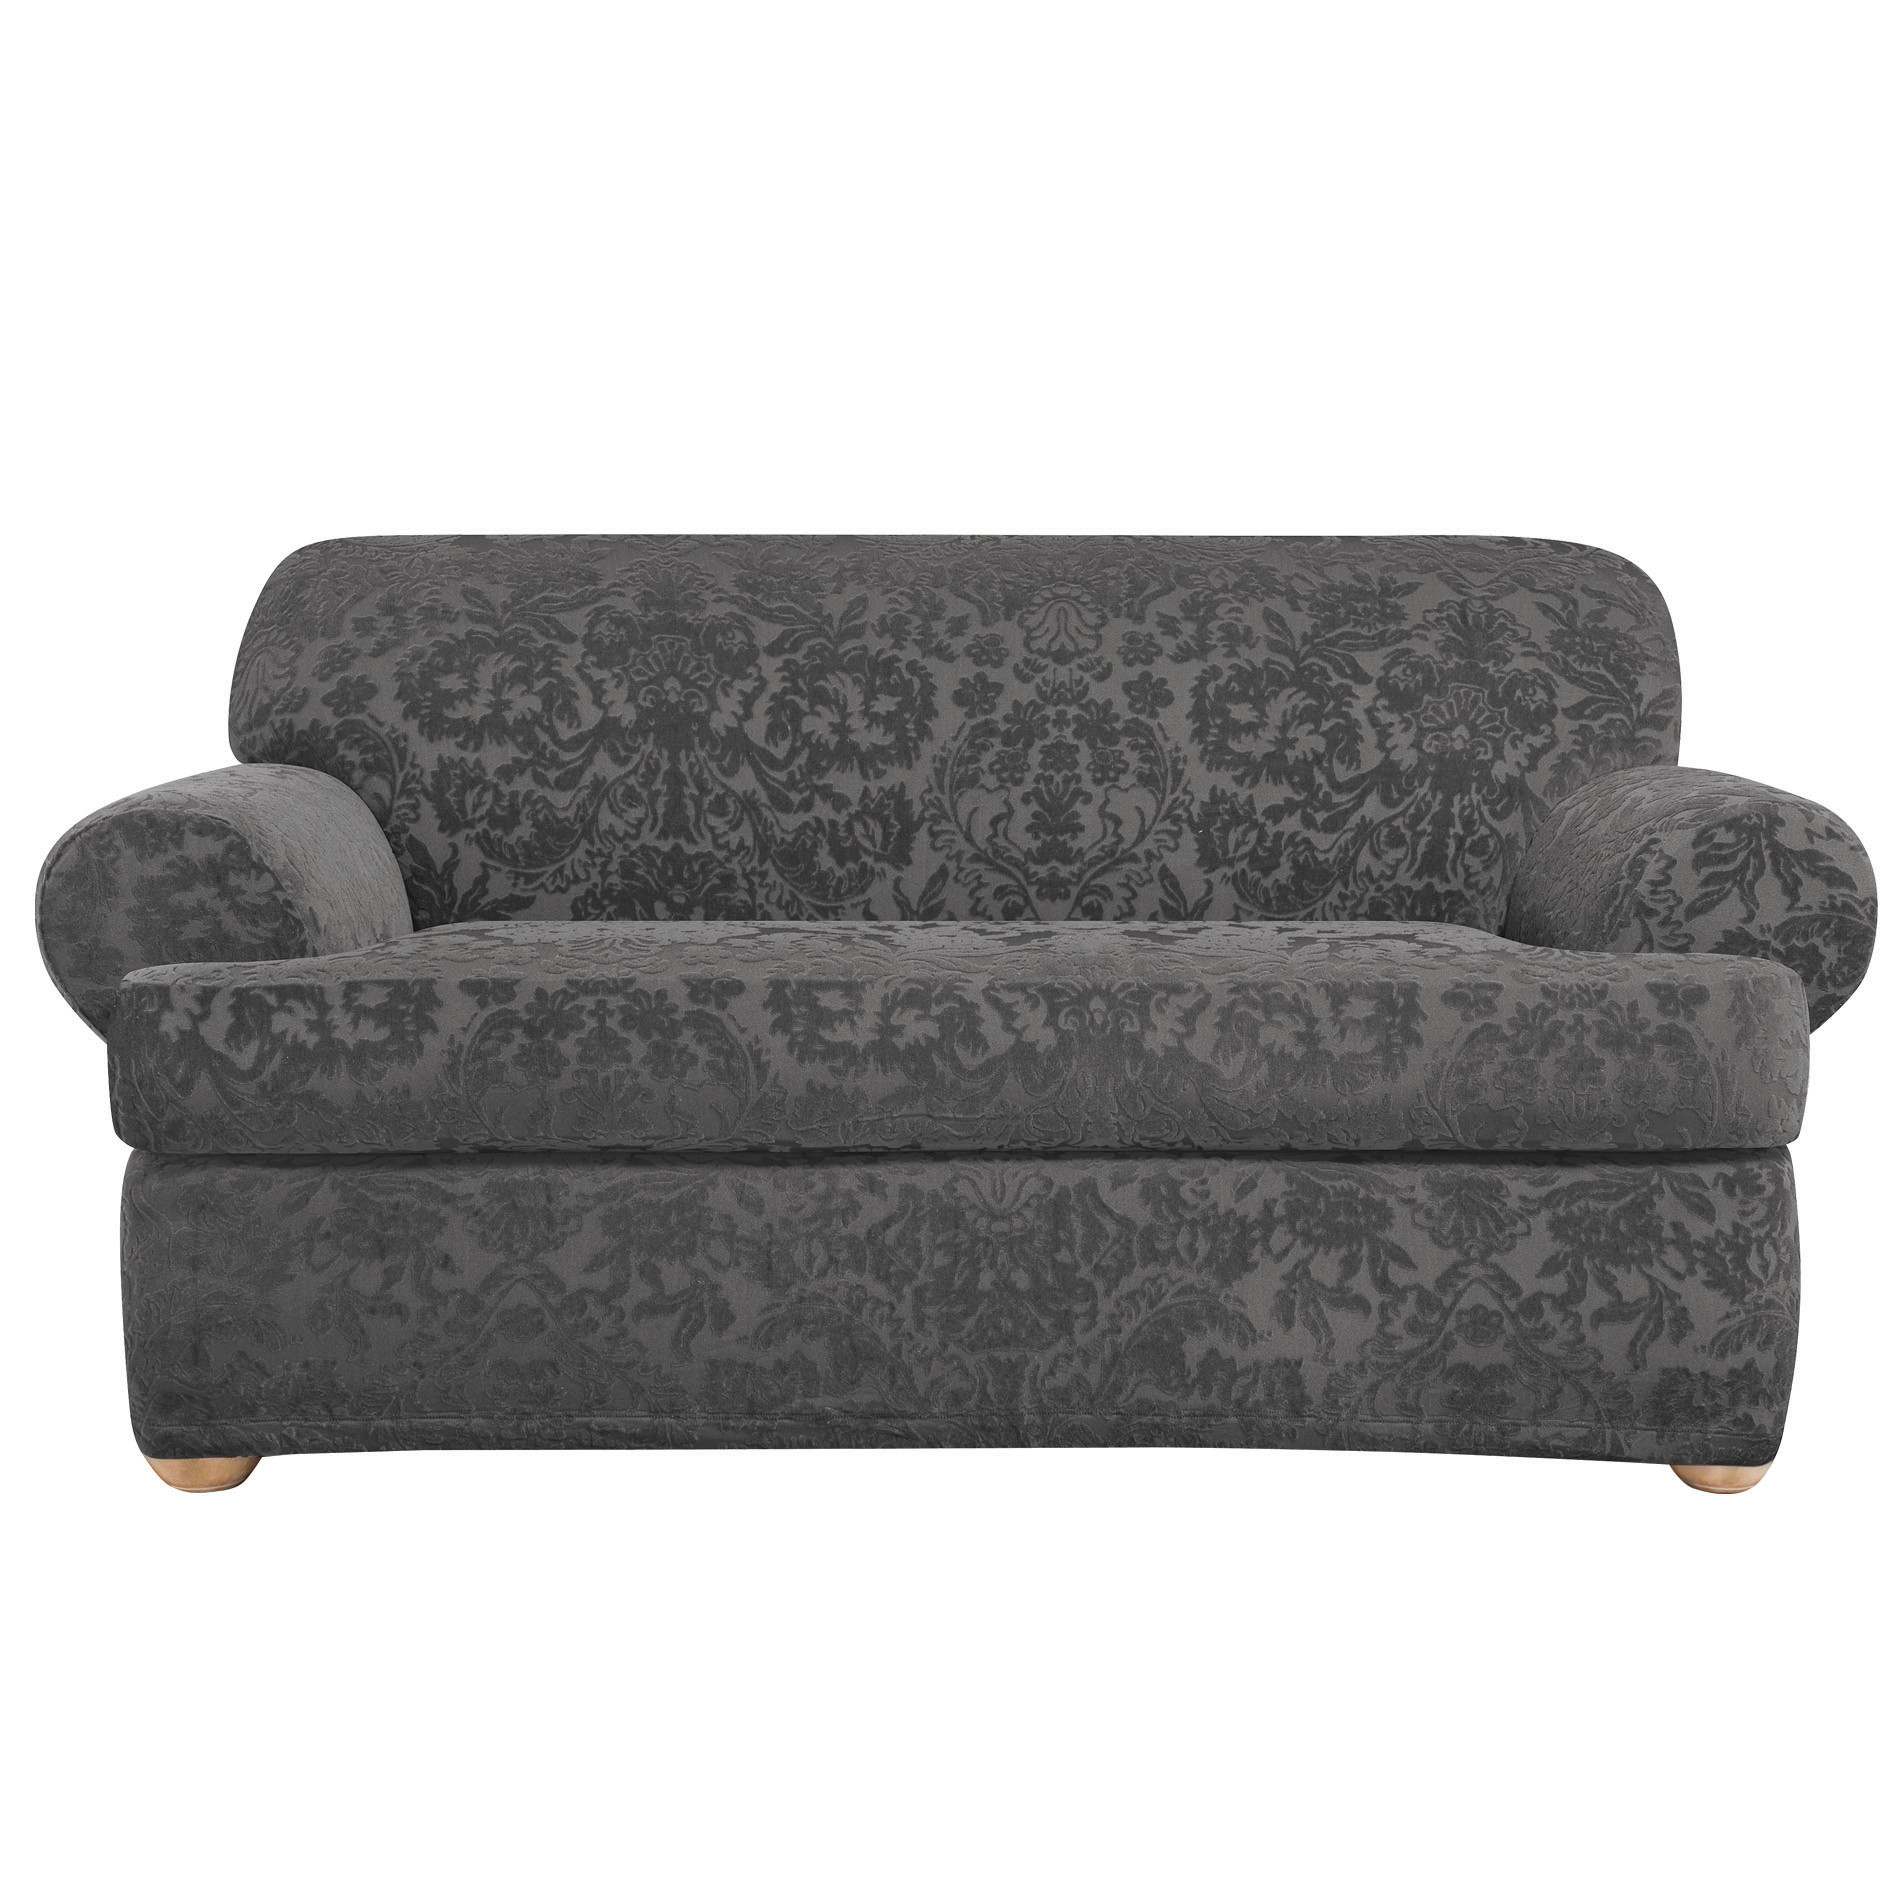 Ugly Couch | Slipcovers for Sofas with Cushions Separate | Sofa and Loveseat Covers Sets